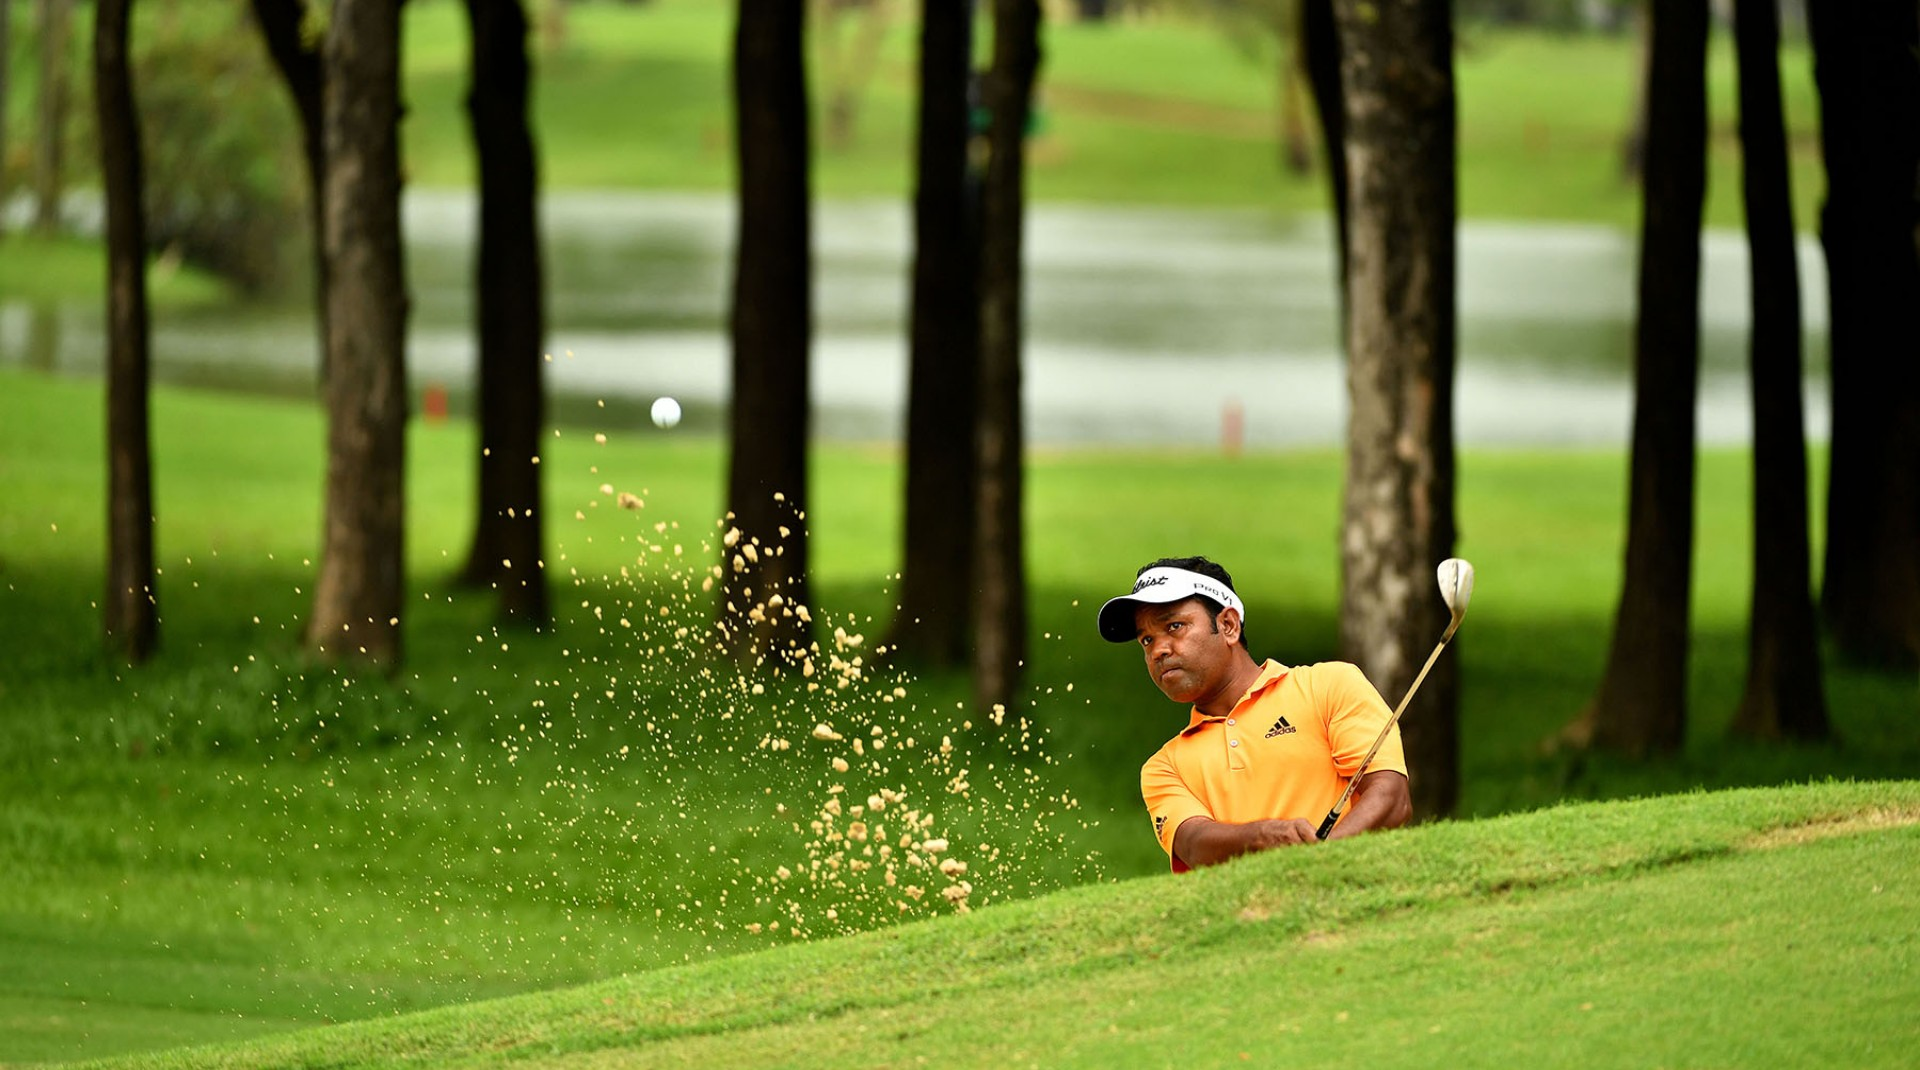 Home favourite siddikur hopes to turn the corner at ab bank bangladesh open